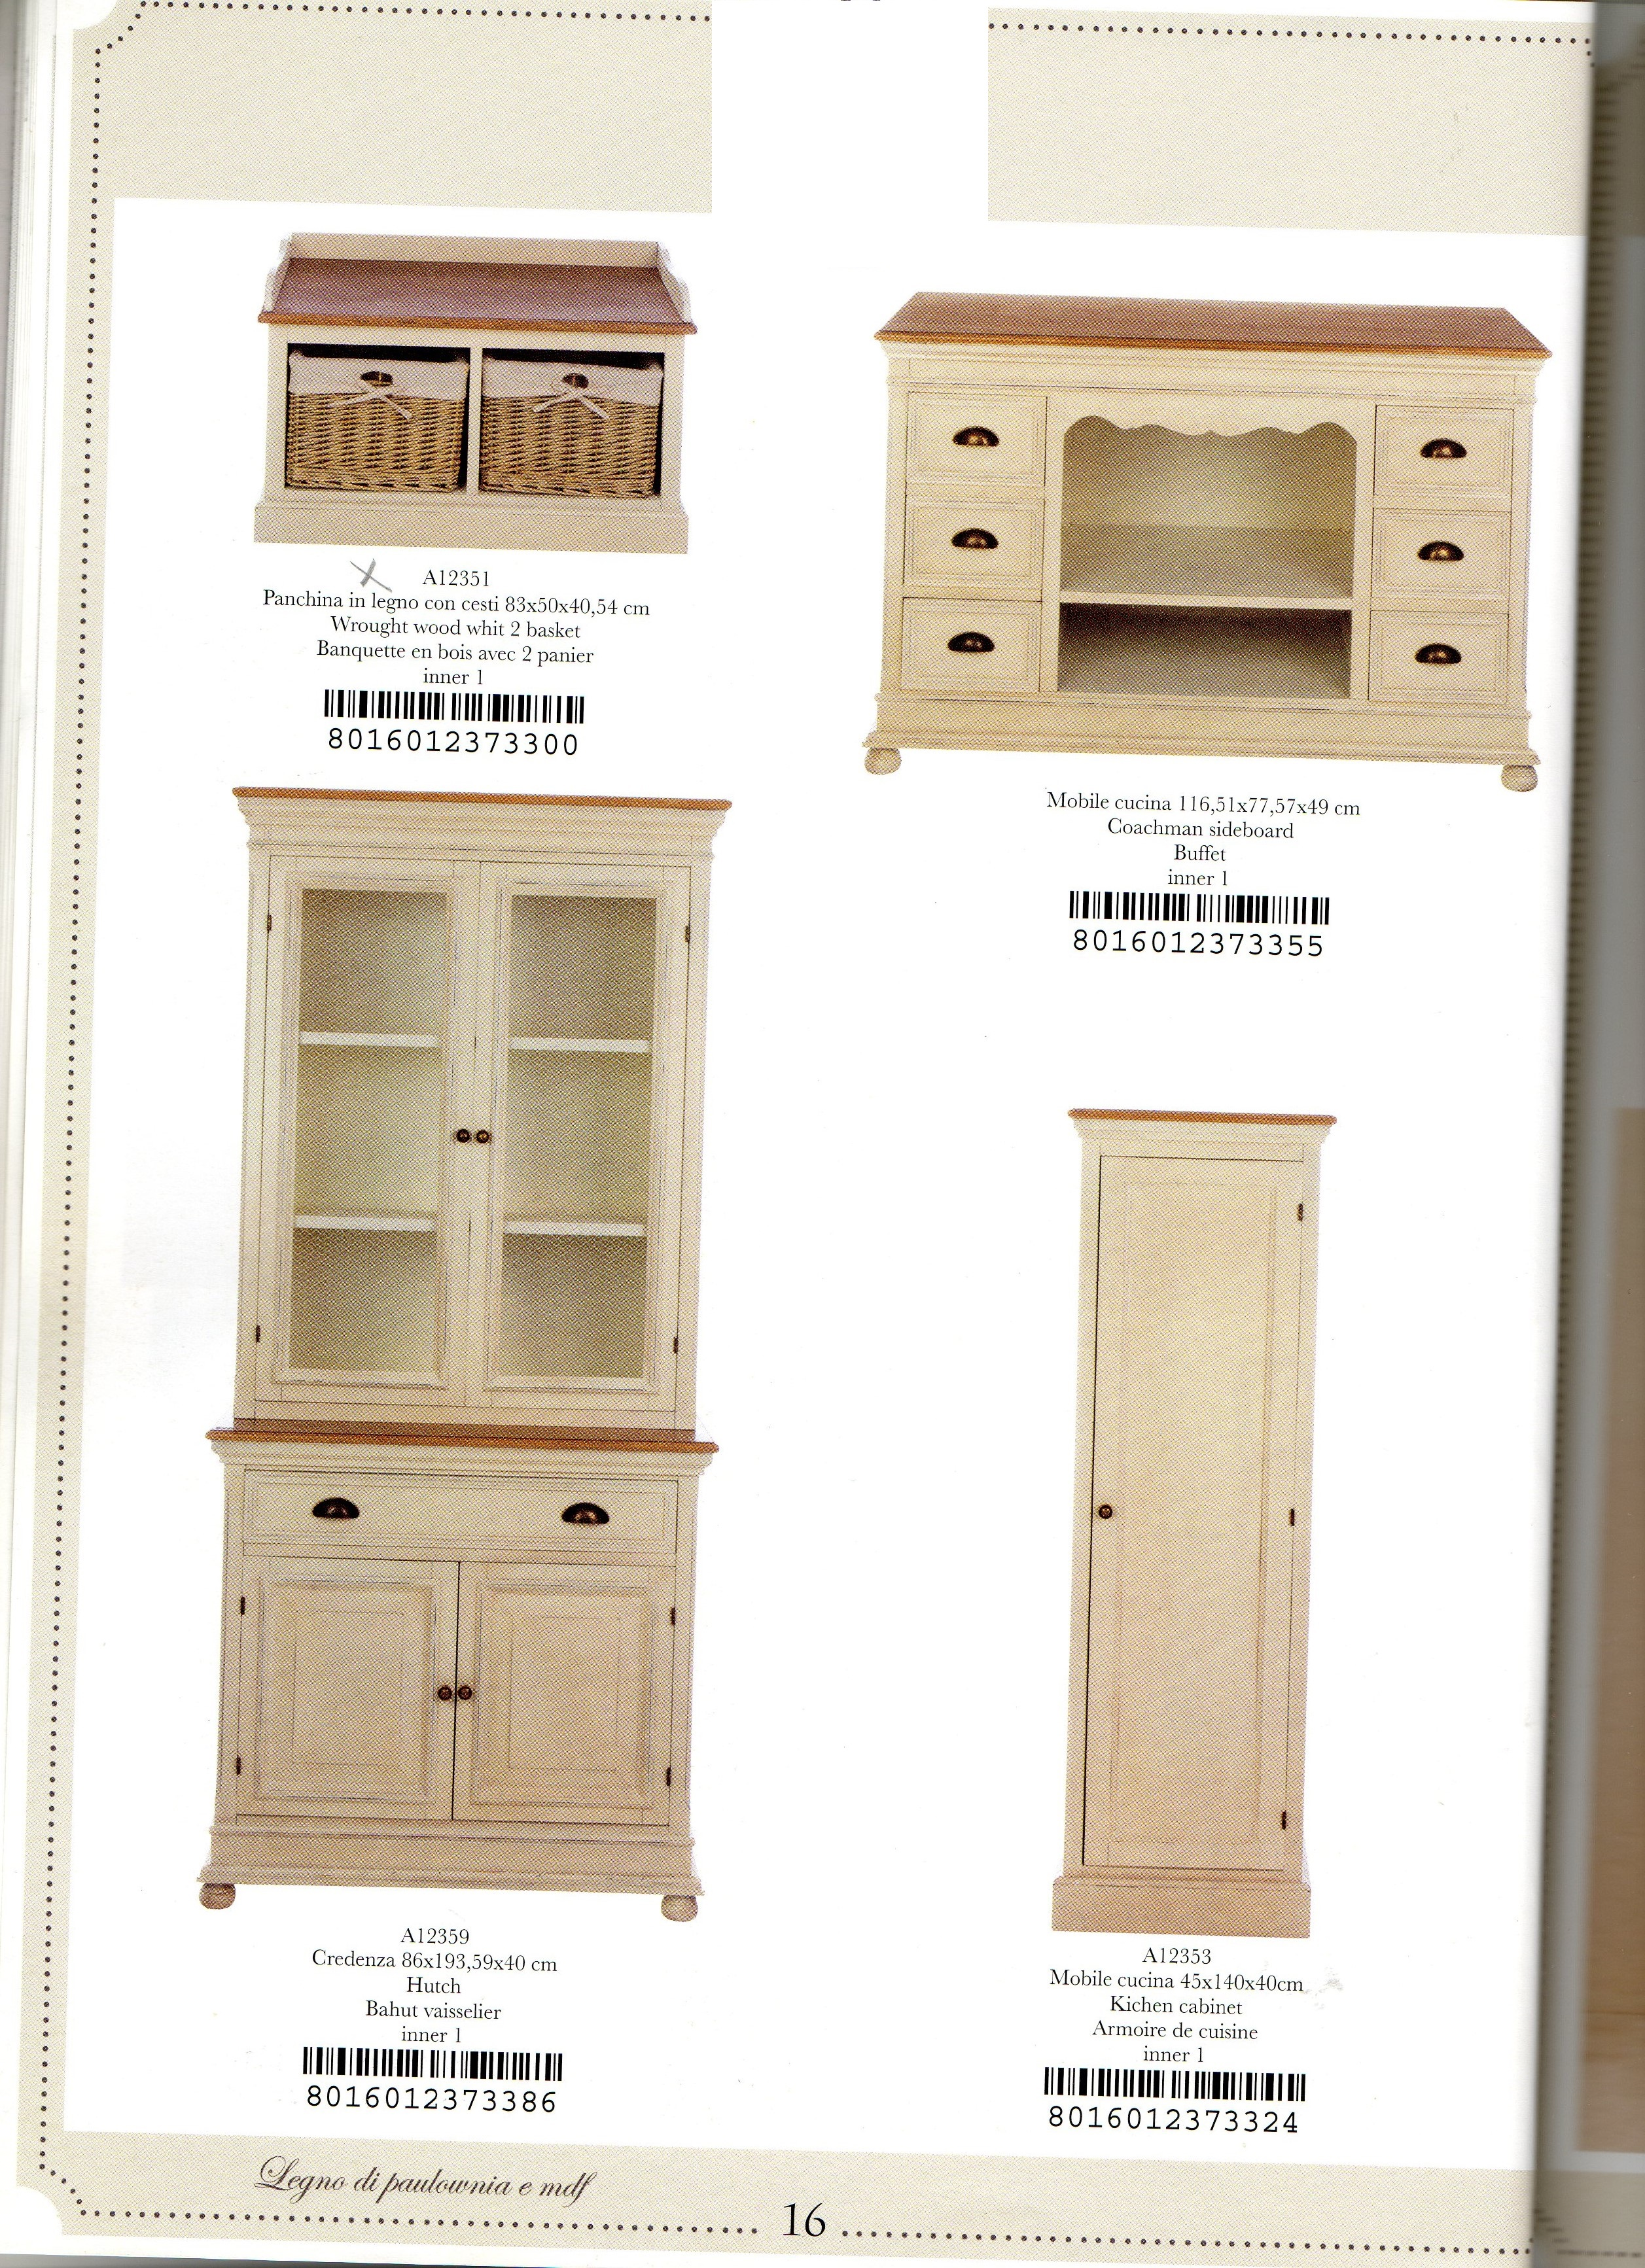 Country house store panca,mobili cucina, credenza